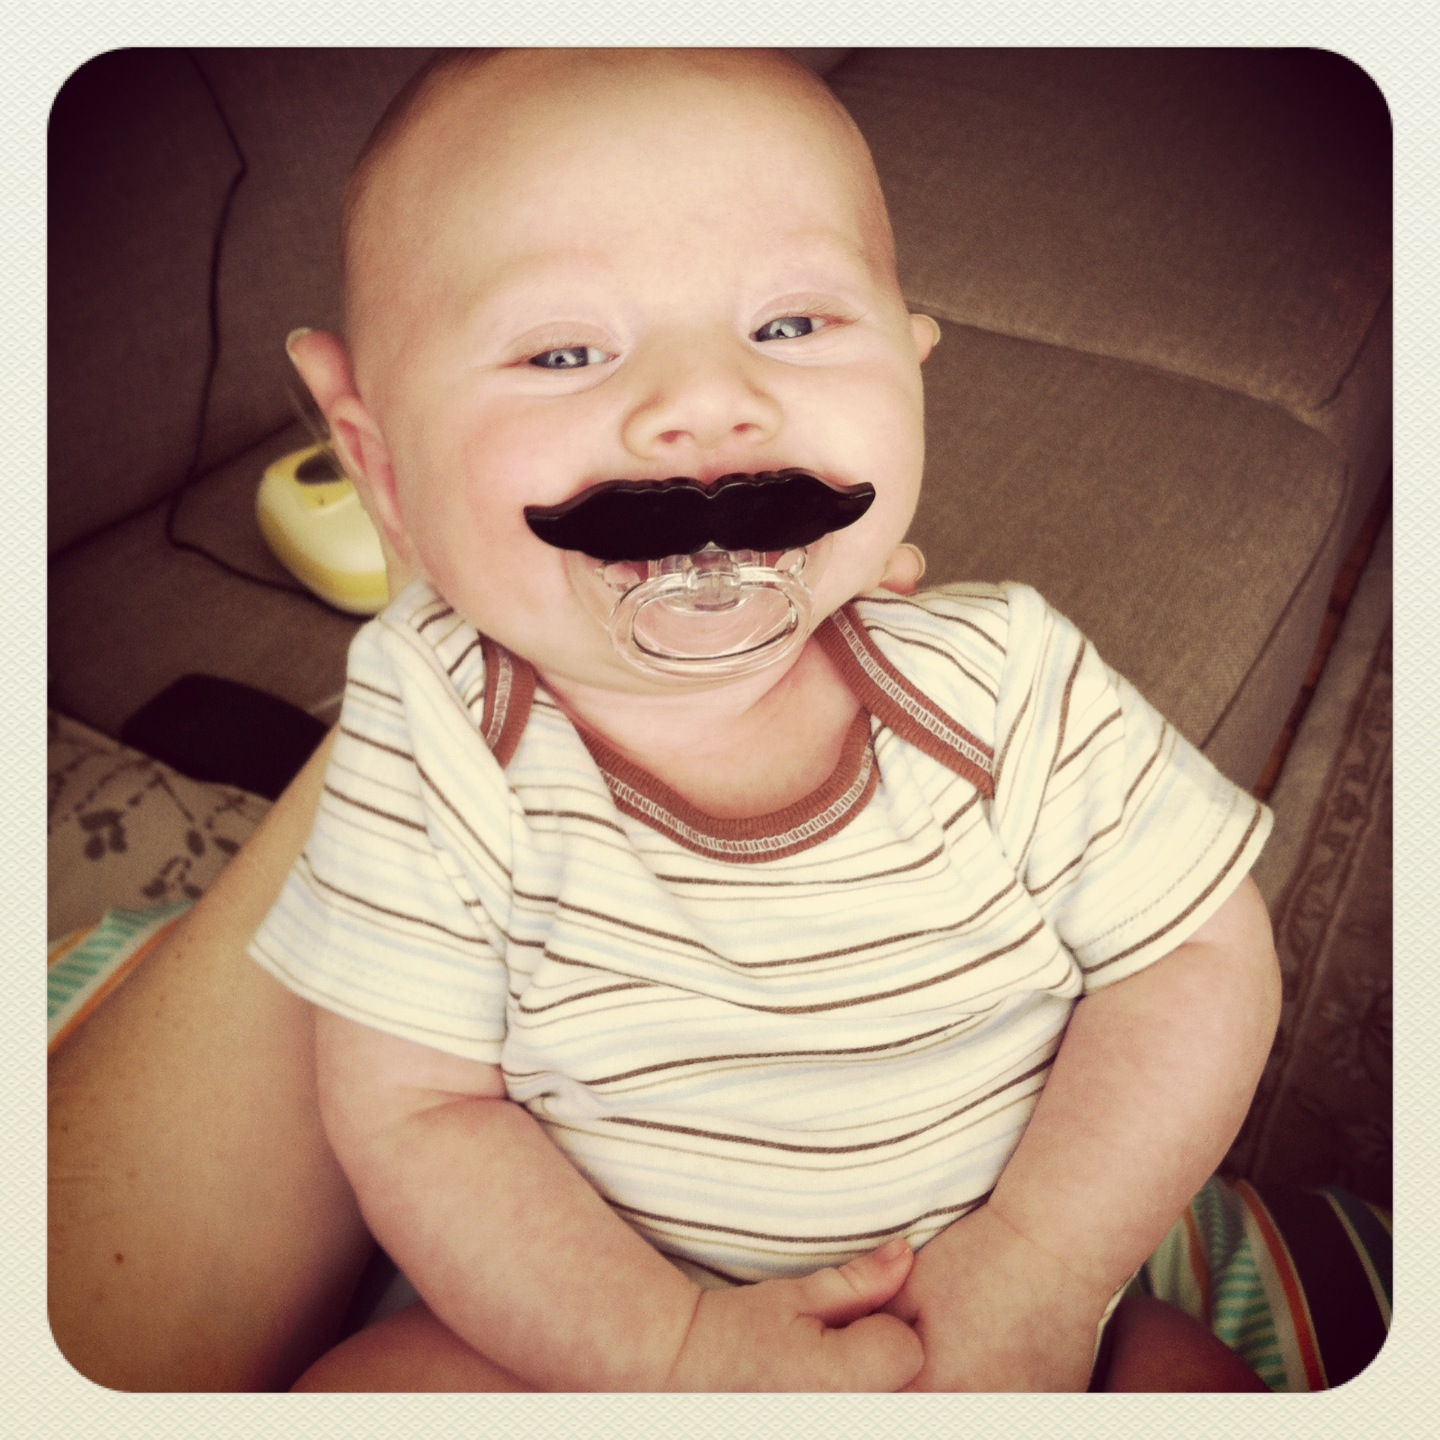 Pin Hipster Baby On Tumblr on Pinterest